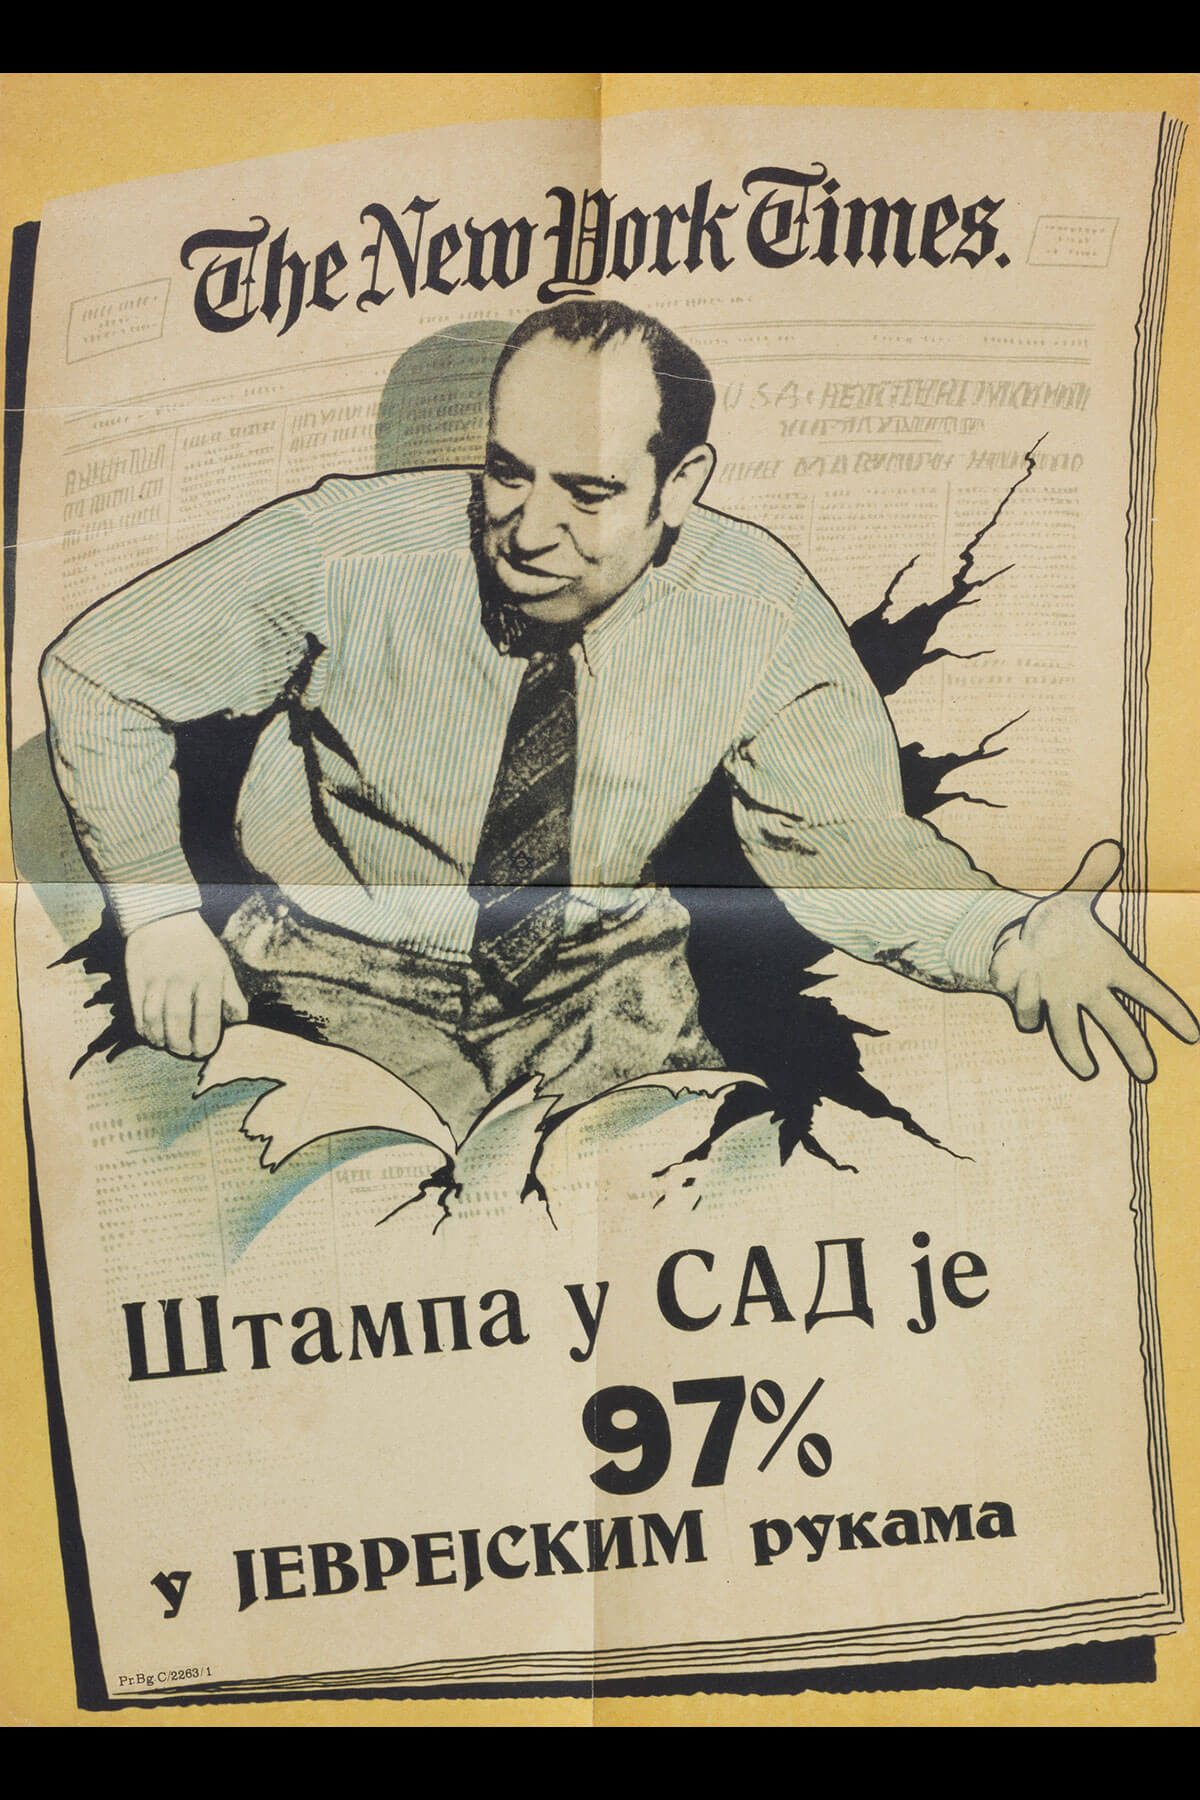 180. An Anti-Semitic Poster Published by the Yugoslav Nazi Party in Belgrade, Serbia